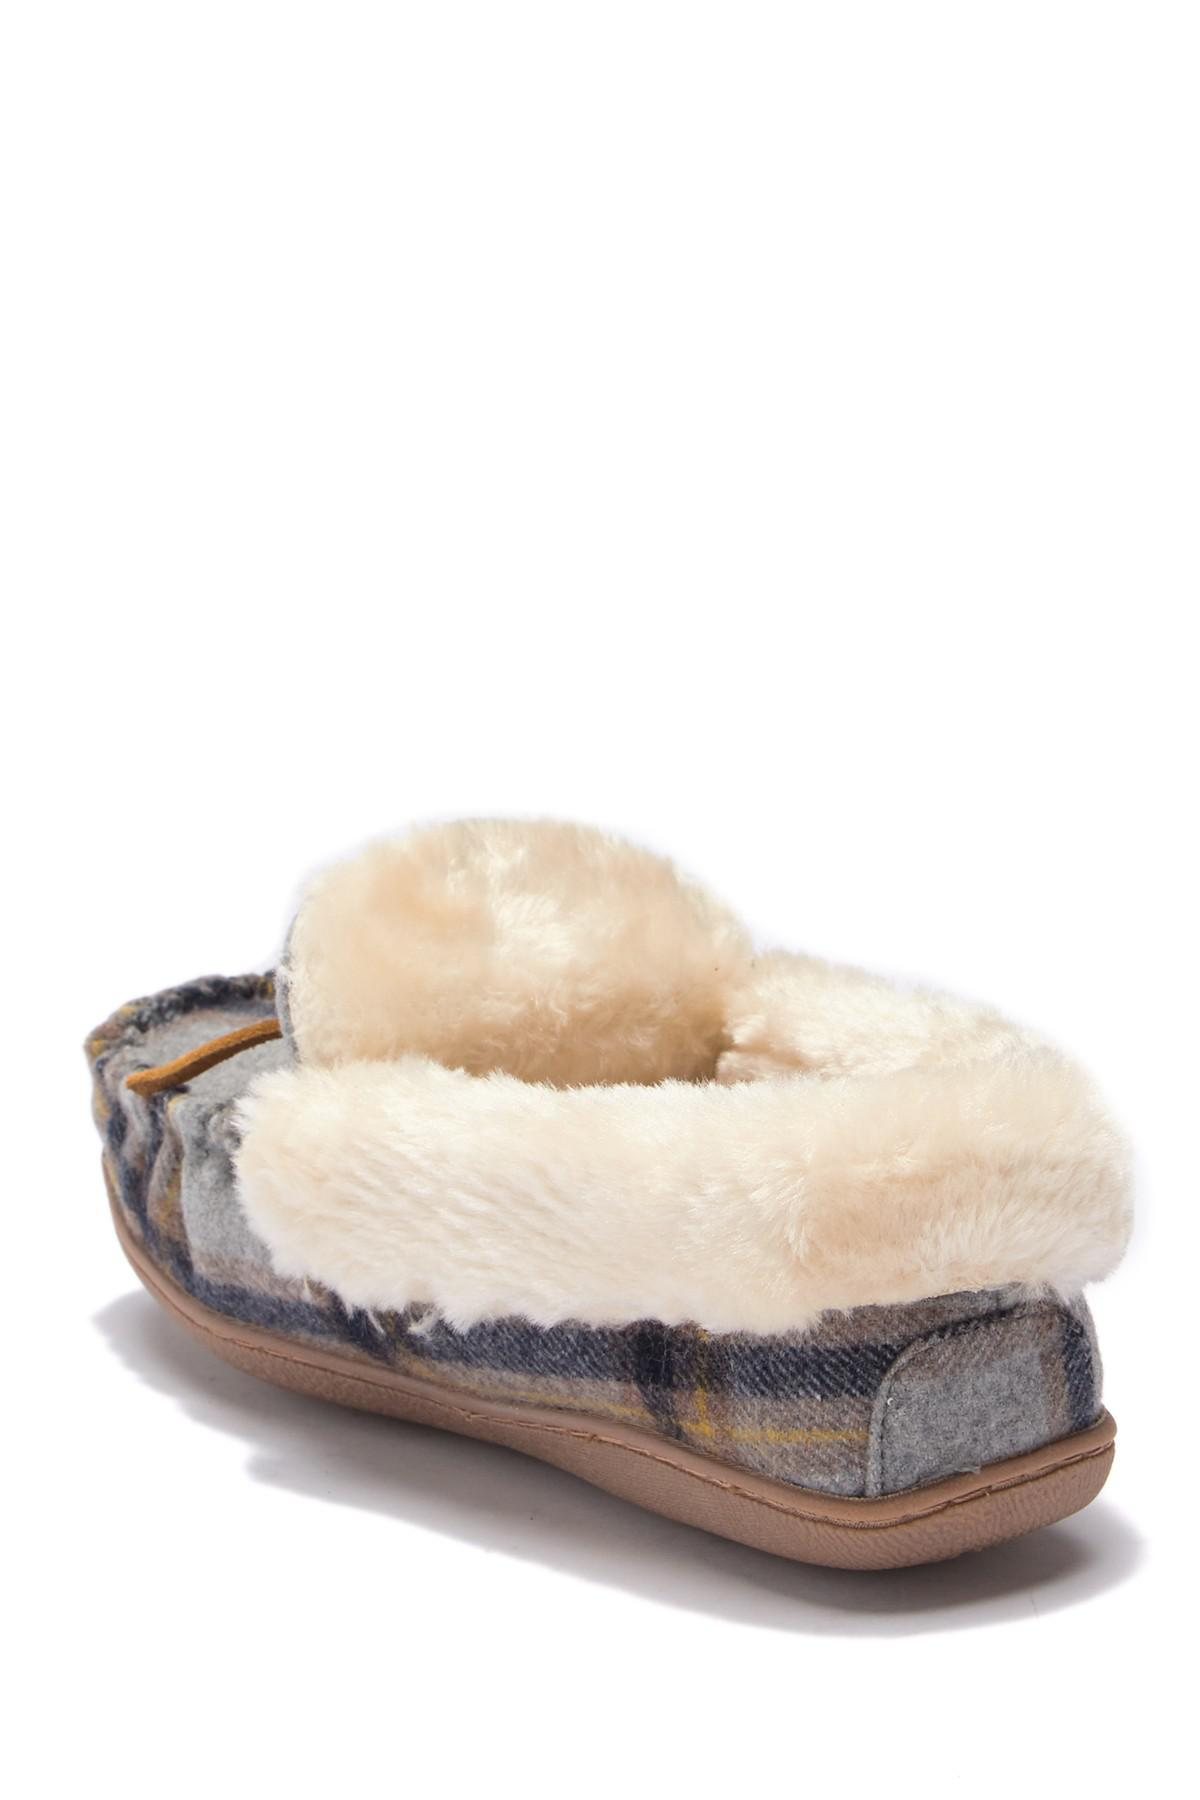 0d32f2772f4 Lyst - Minnetonka Tracy Trapper Slipper in Gray - Save 38%